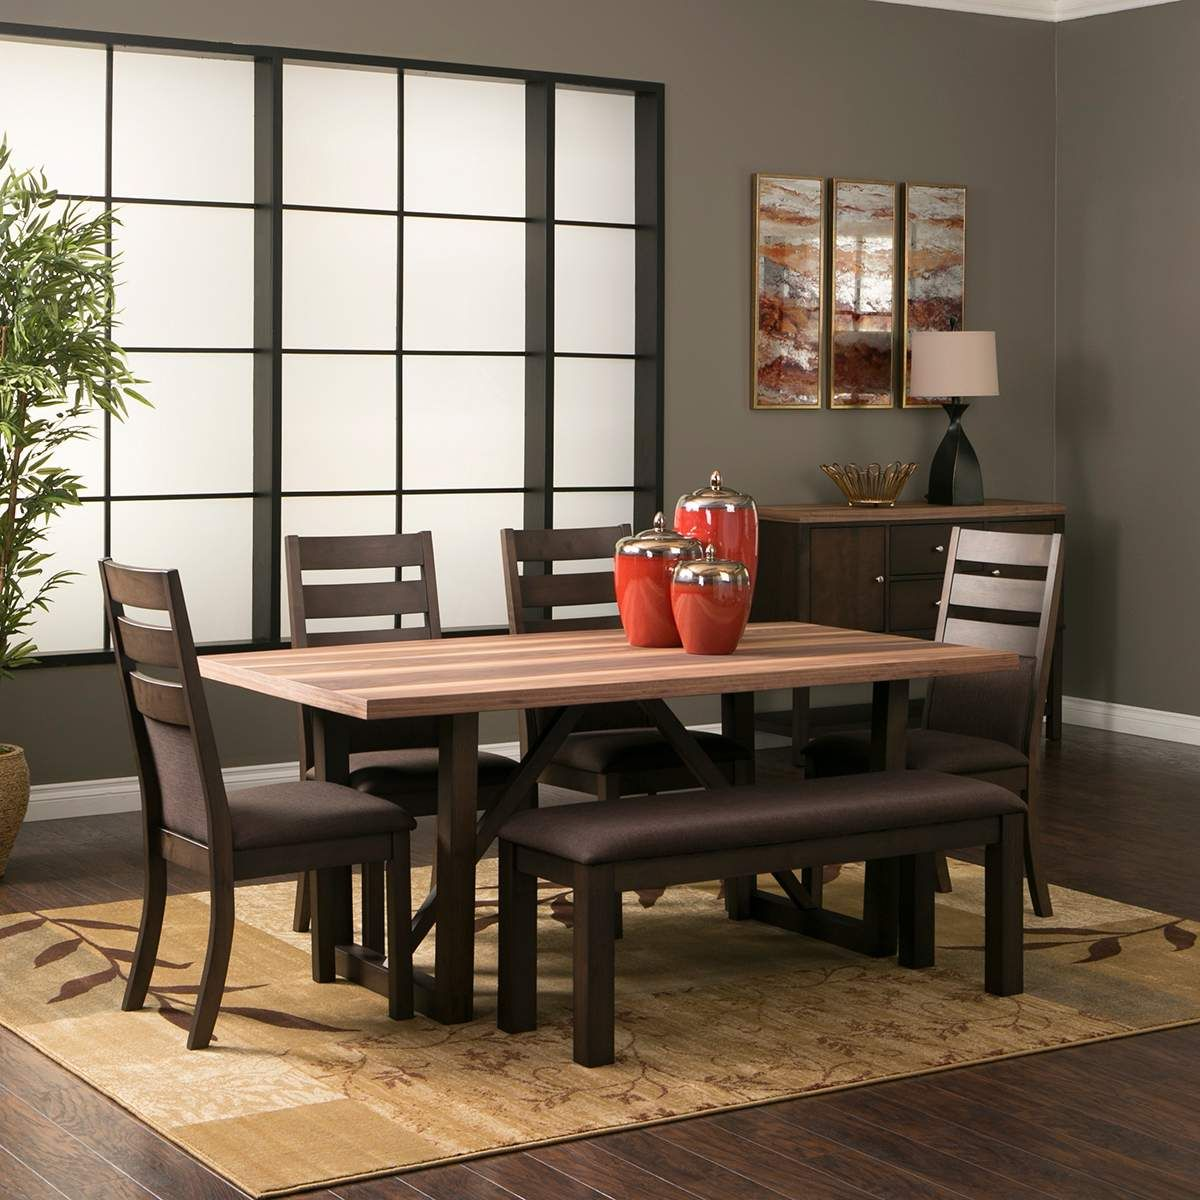 Venice Dining Collection Dining Table 4 Chairs In Espresso Dining Room Furniture Sets Casual Dining Room Furniture Furniture